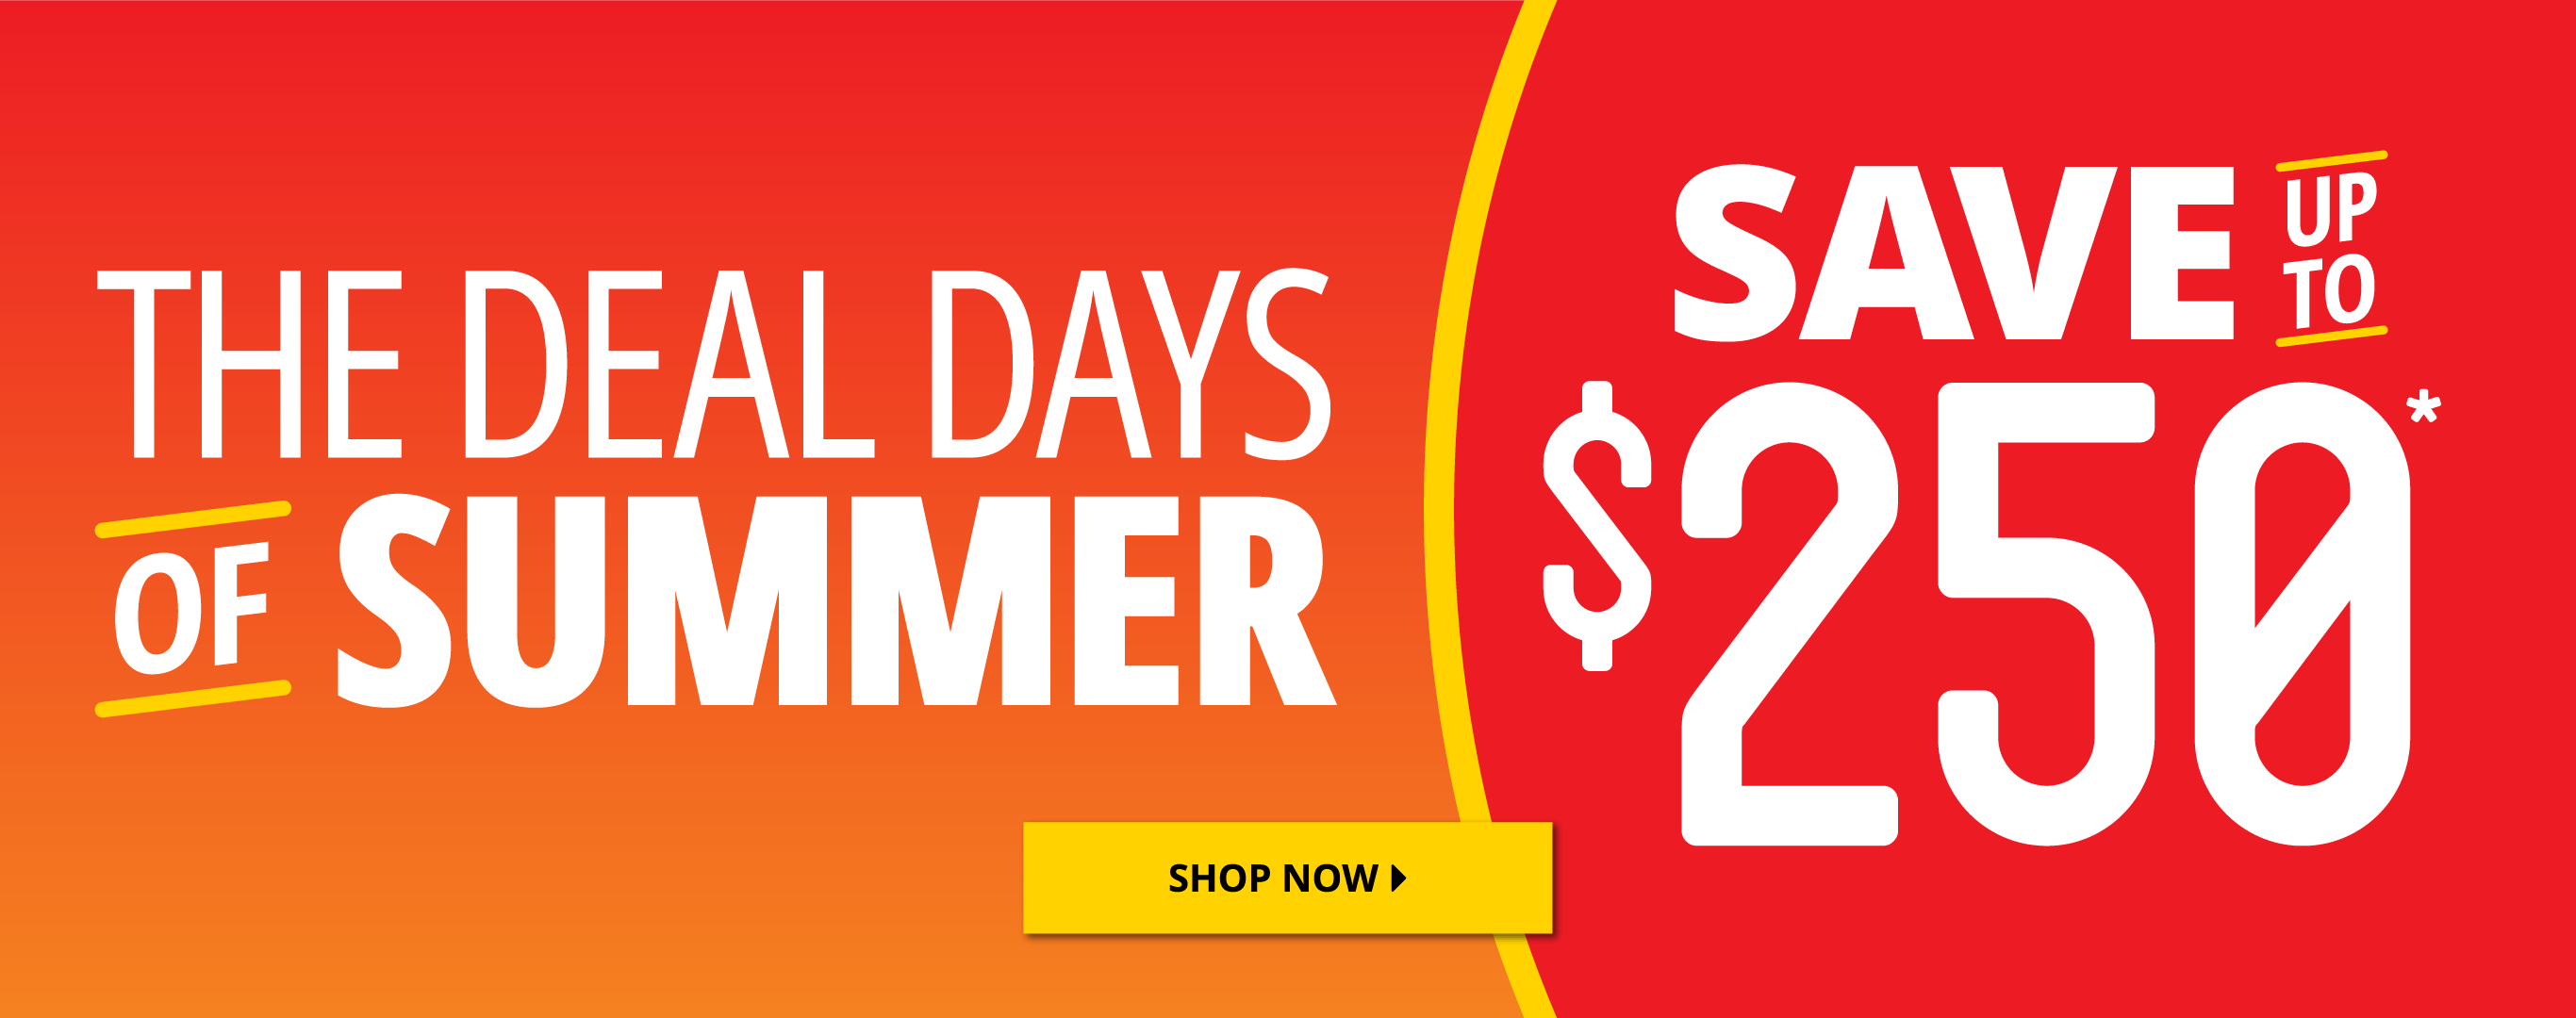 Deal Days of Summer | Save up to $250